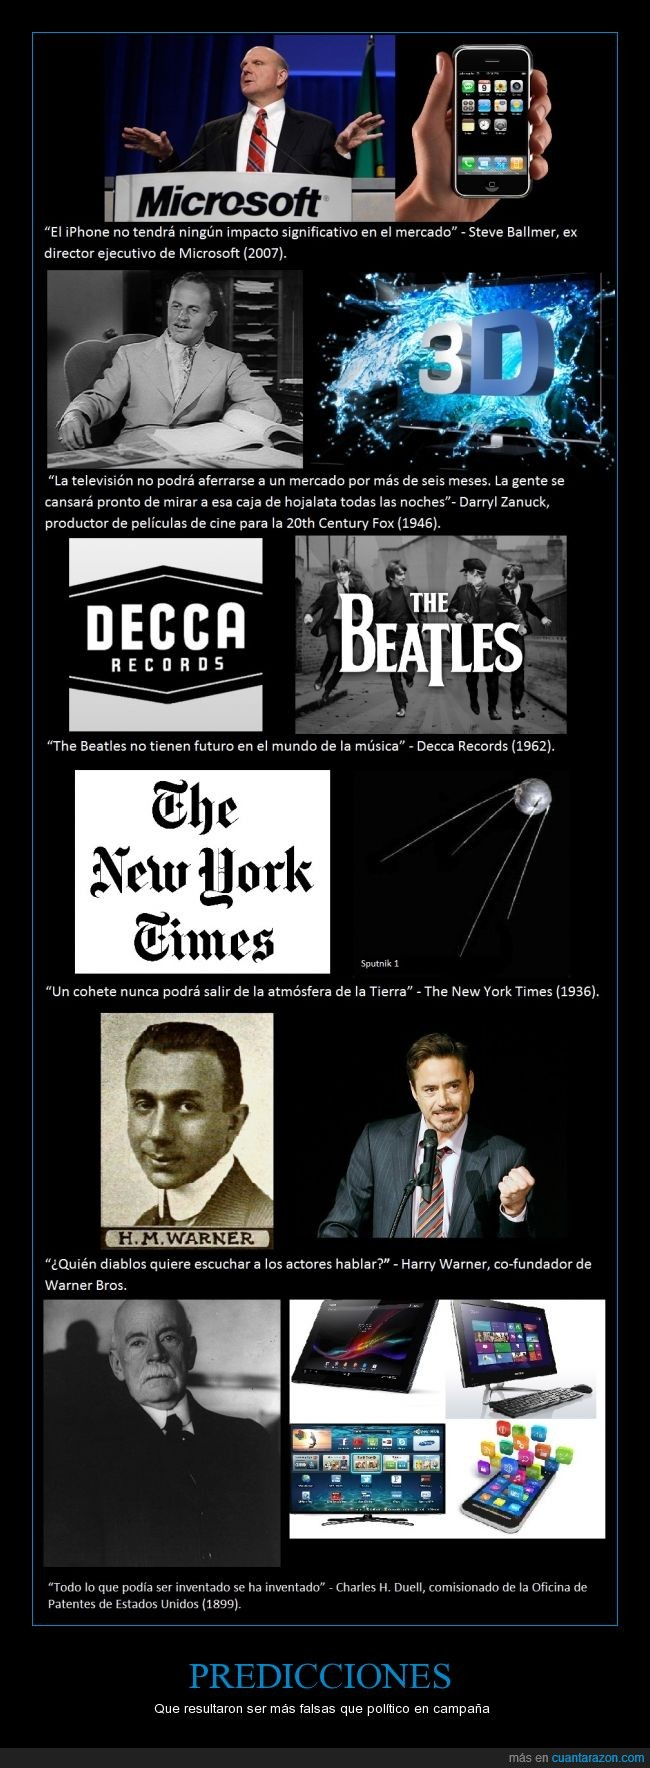 Beatles,Charles H. Duell,cohete,Darryl Zanuck,Decca Records,erroneas,falsas,Harry Warner,iPhone,Microsoft,predicciones,robert downey jr,sputnik 1,Steve Ballmer,television,The New York Times